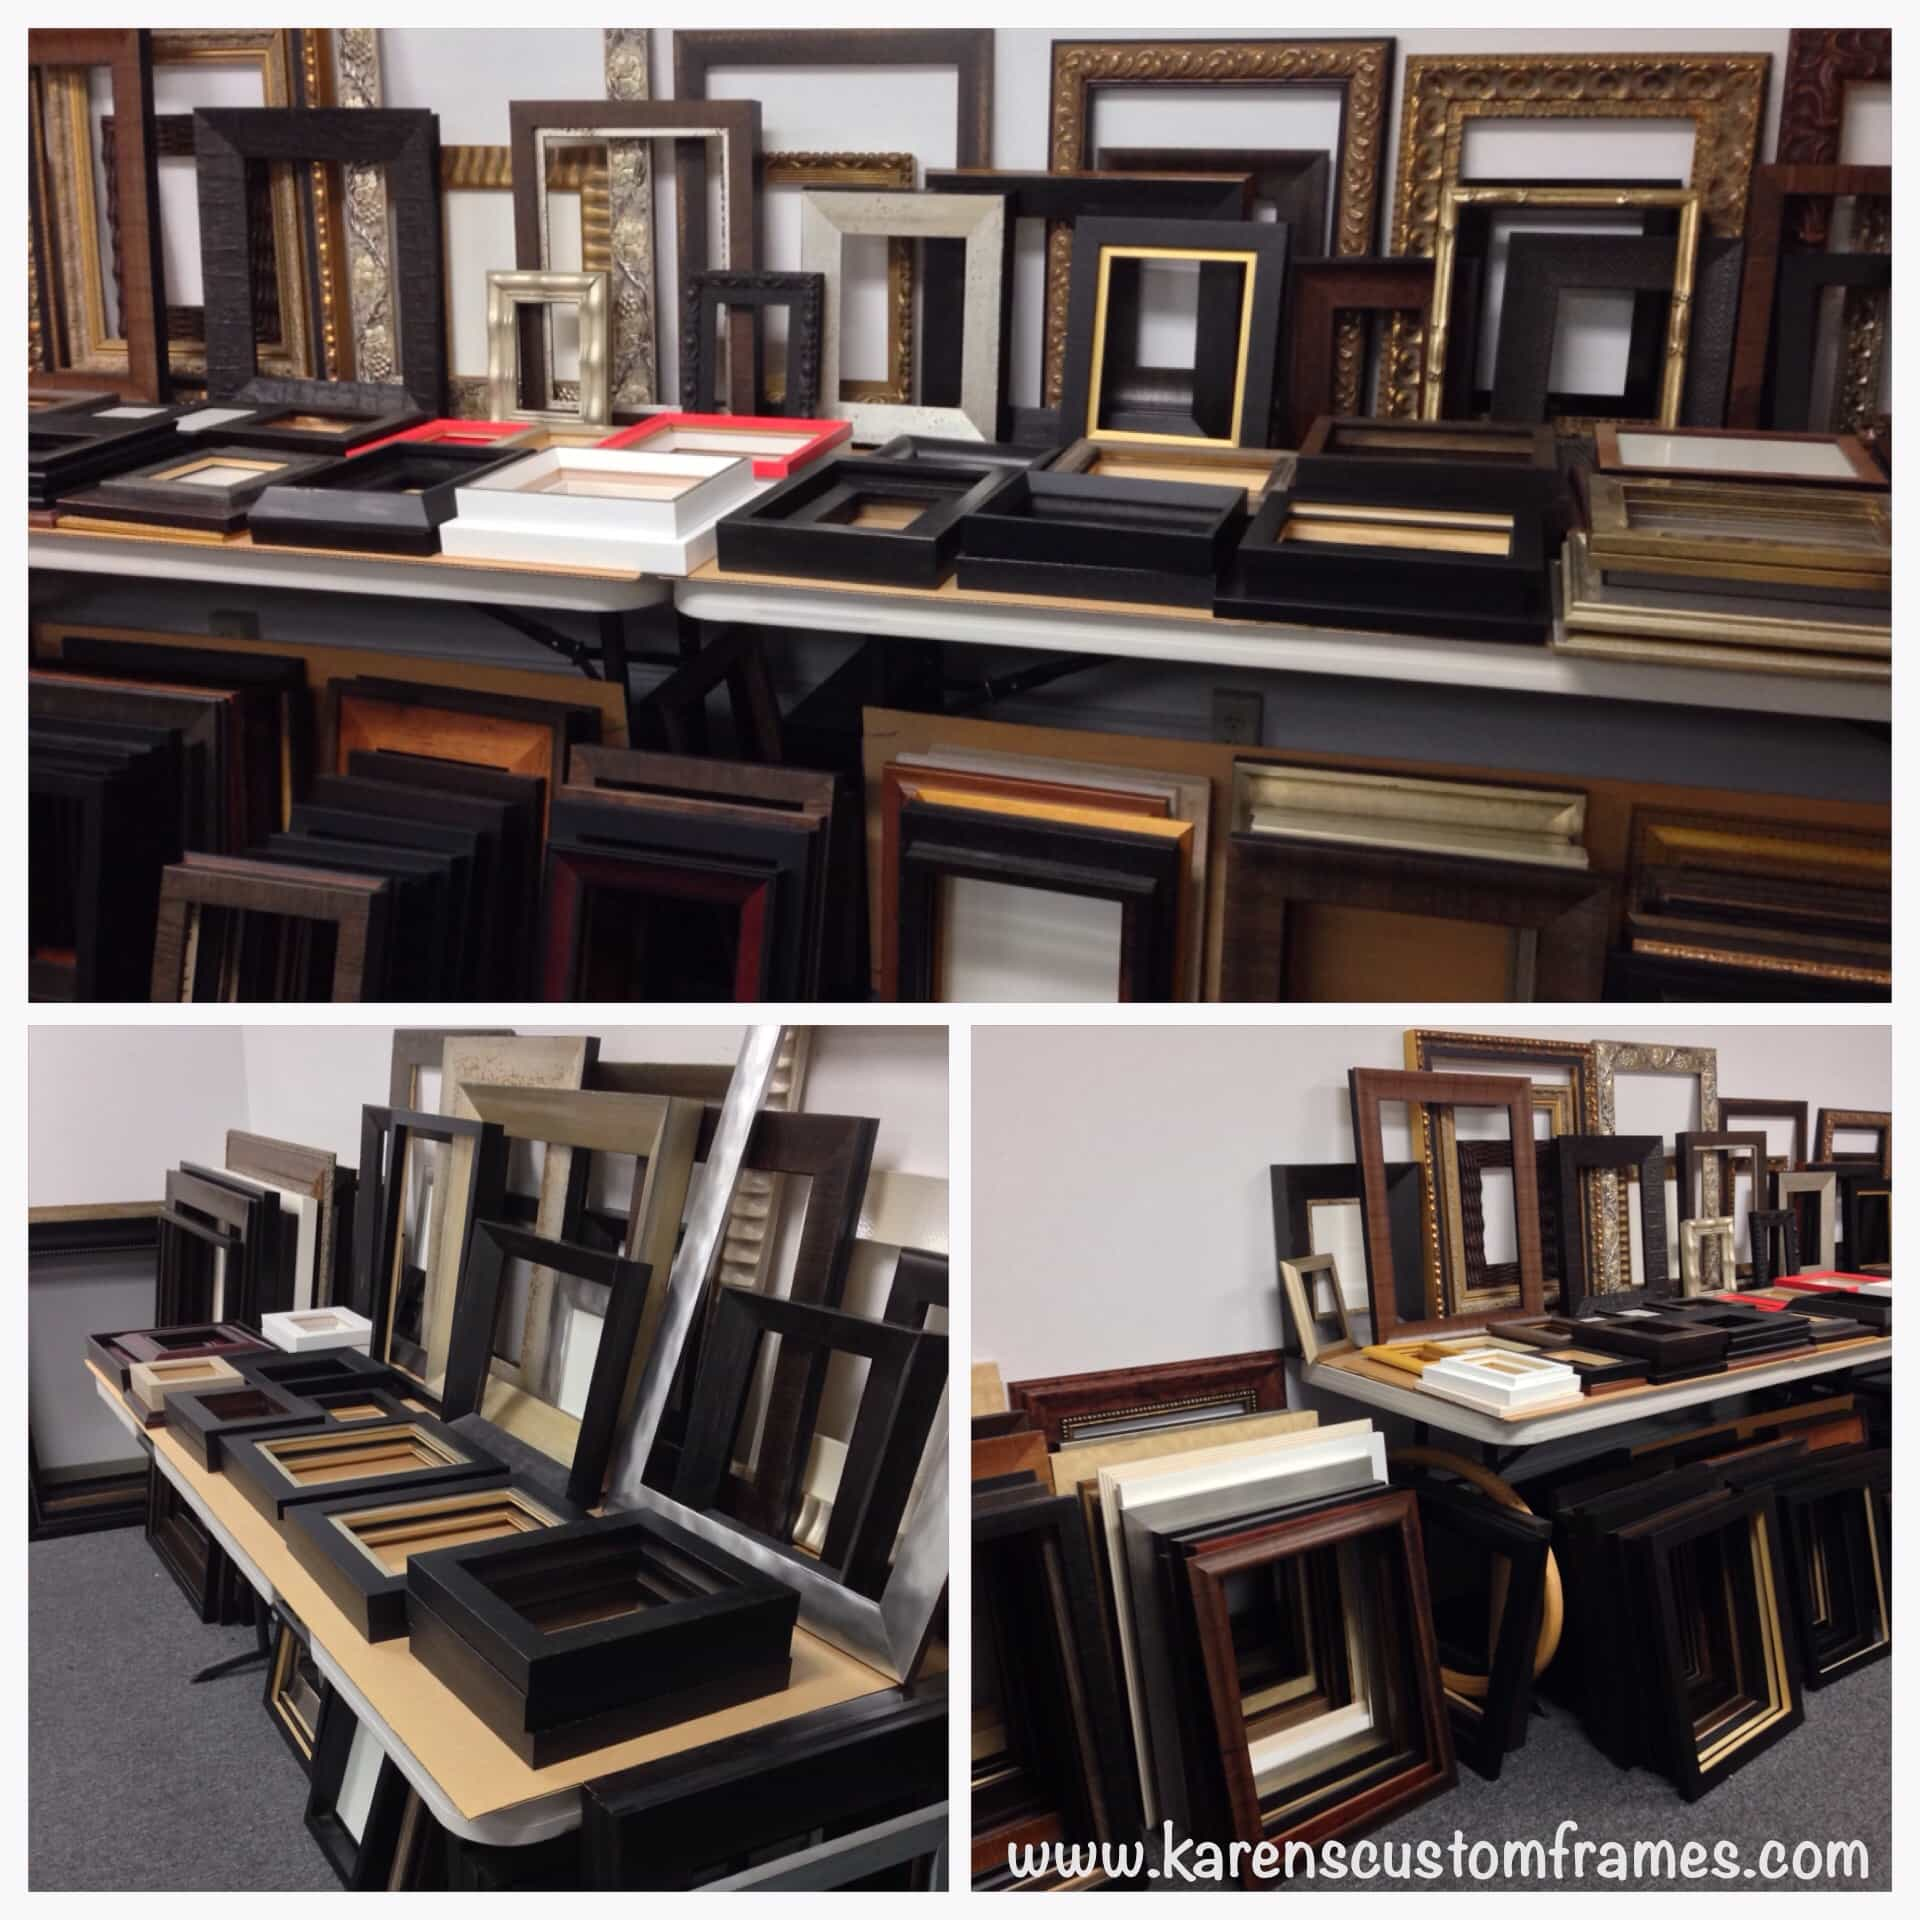 Ready-Made Picture Frames by Karen's Detail Custom Frames